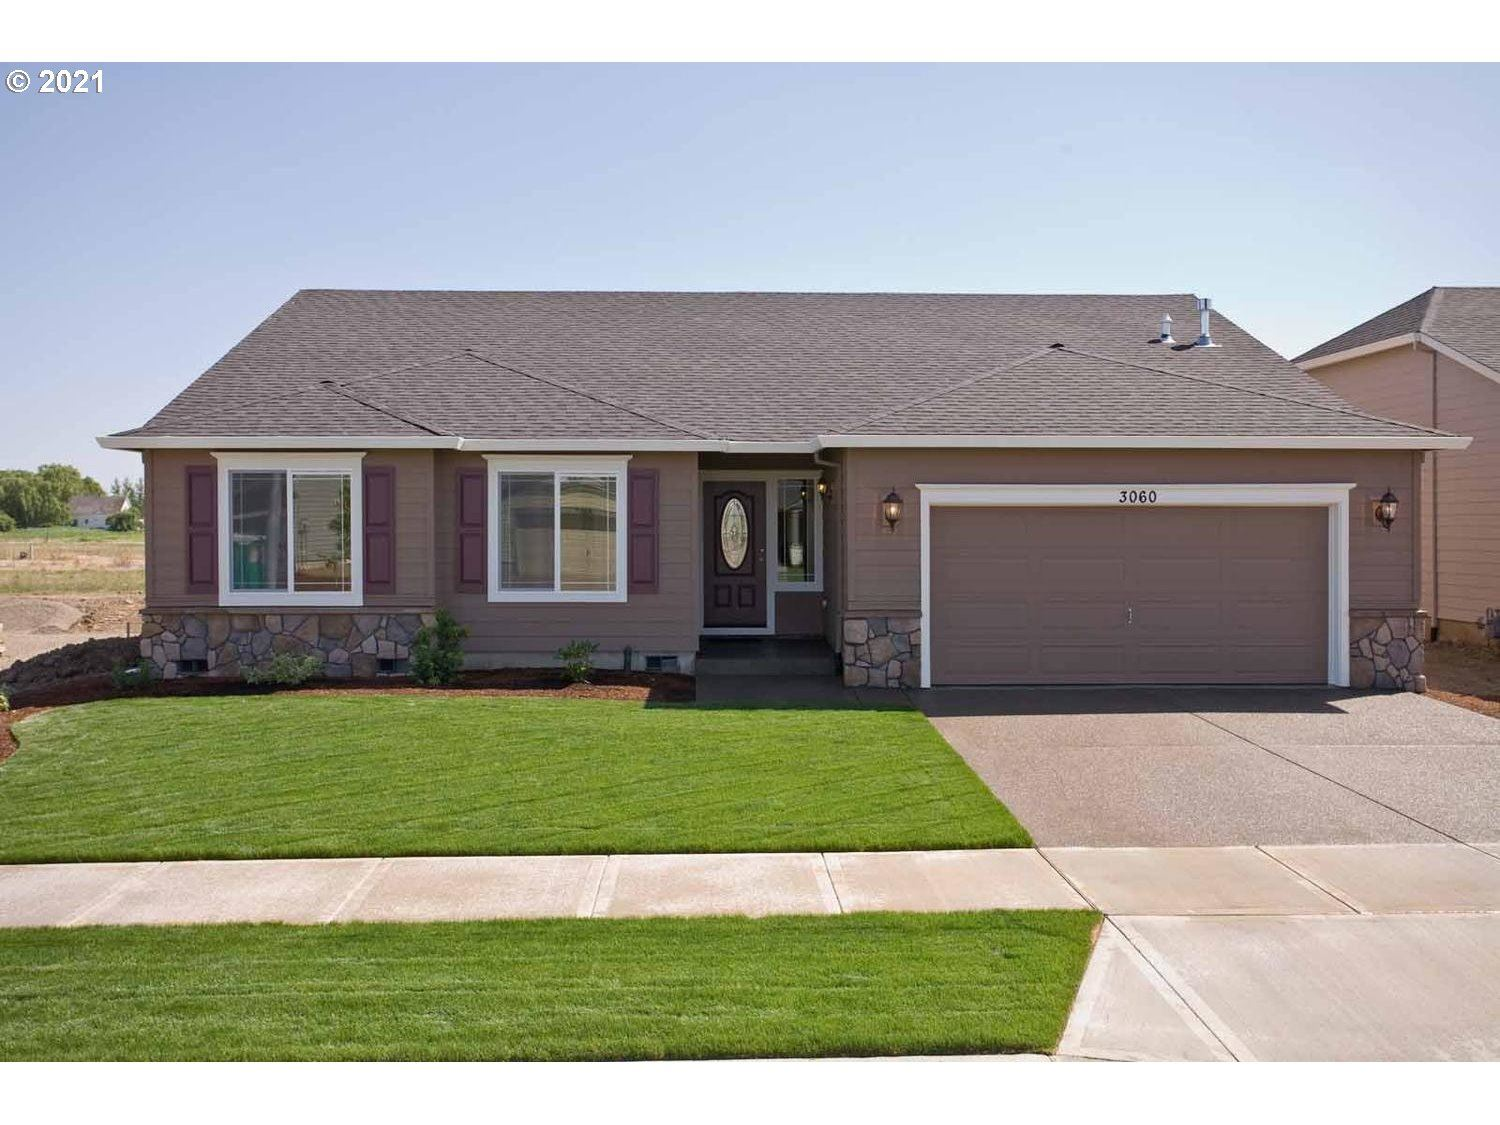 Photo of 1013 Winfield ST, Gervais, OR 97026 (MLS # 21038326)